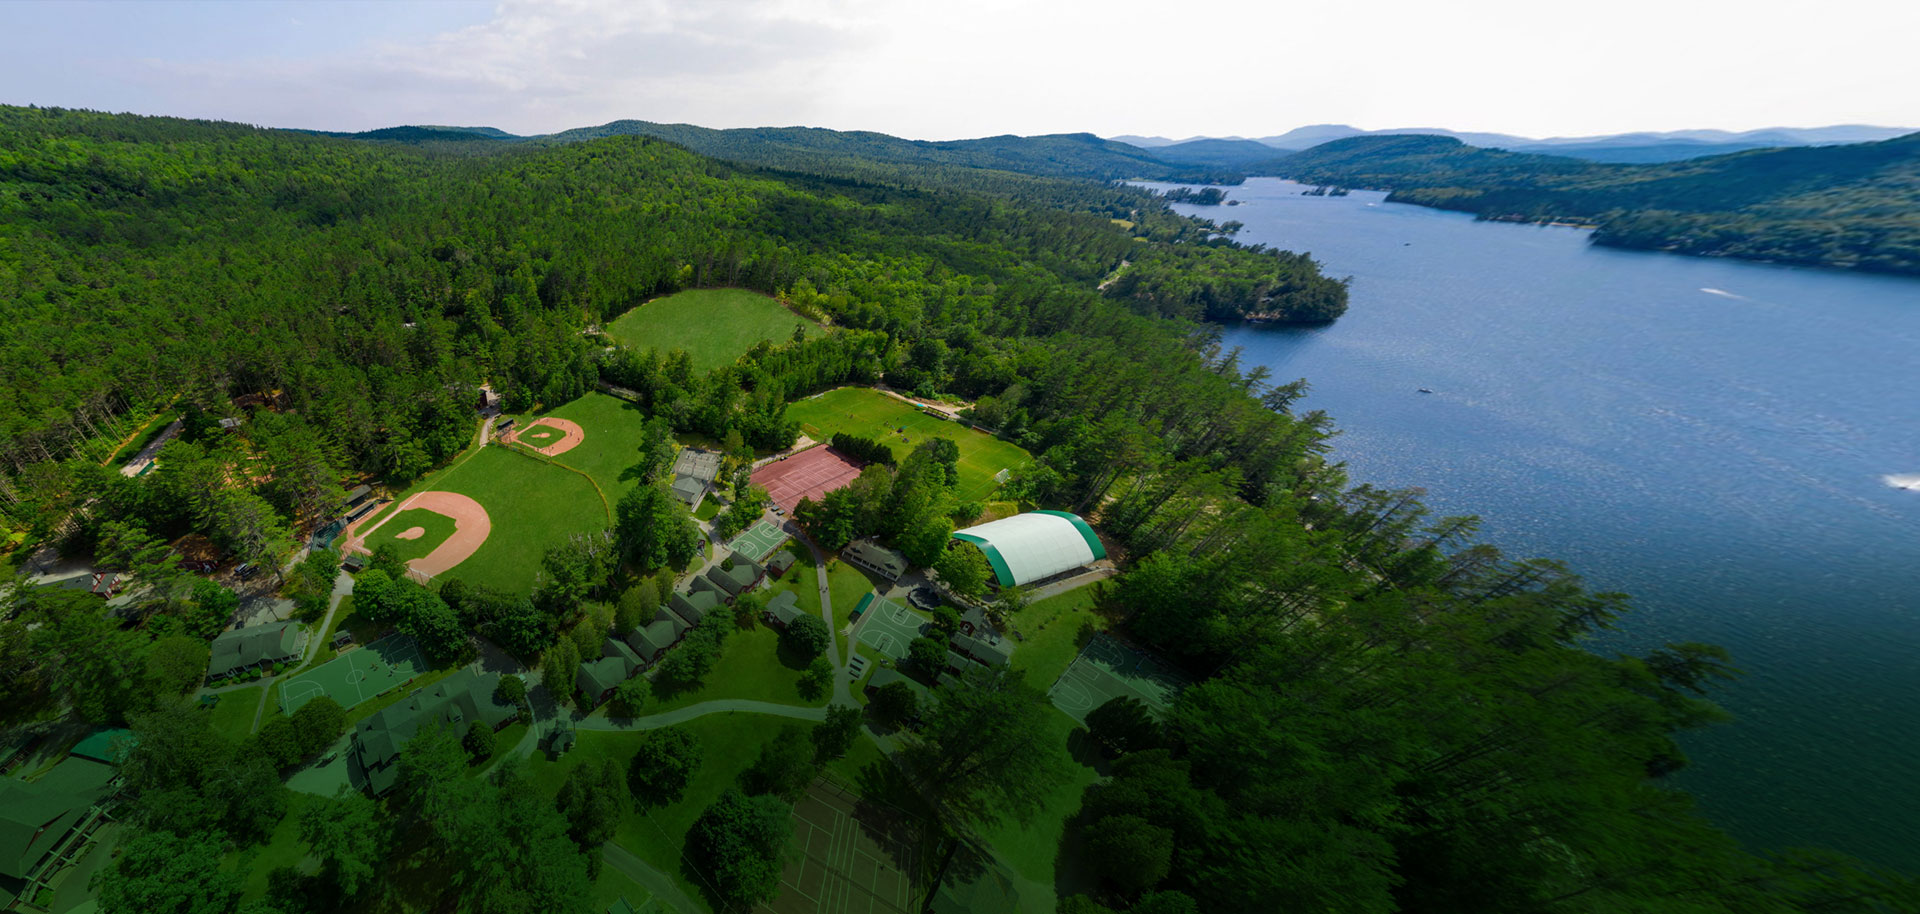 Visiting Brant Lake Summer Camp in New York